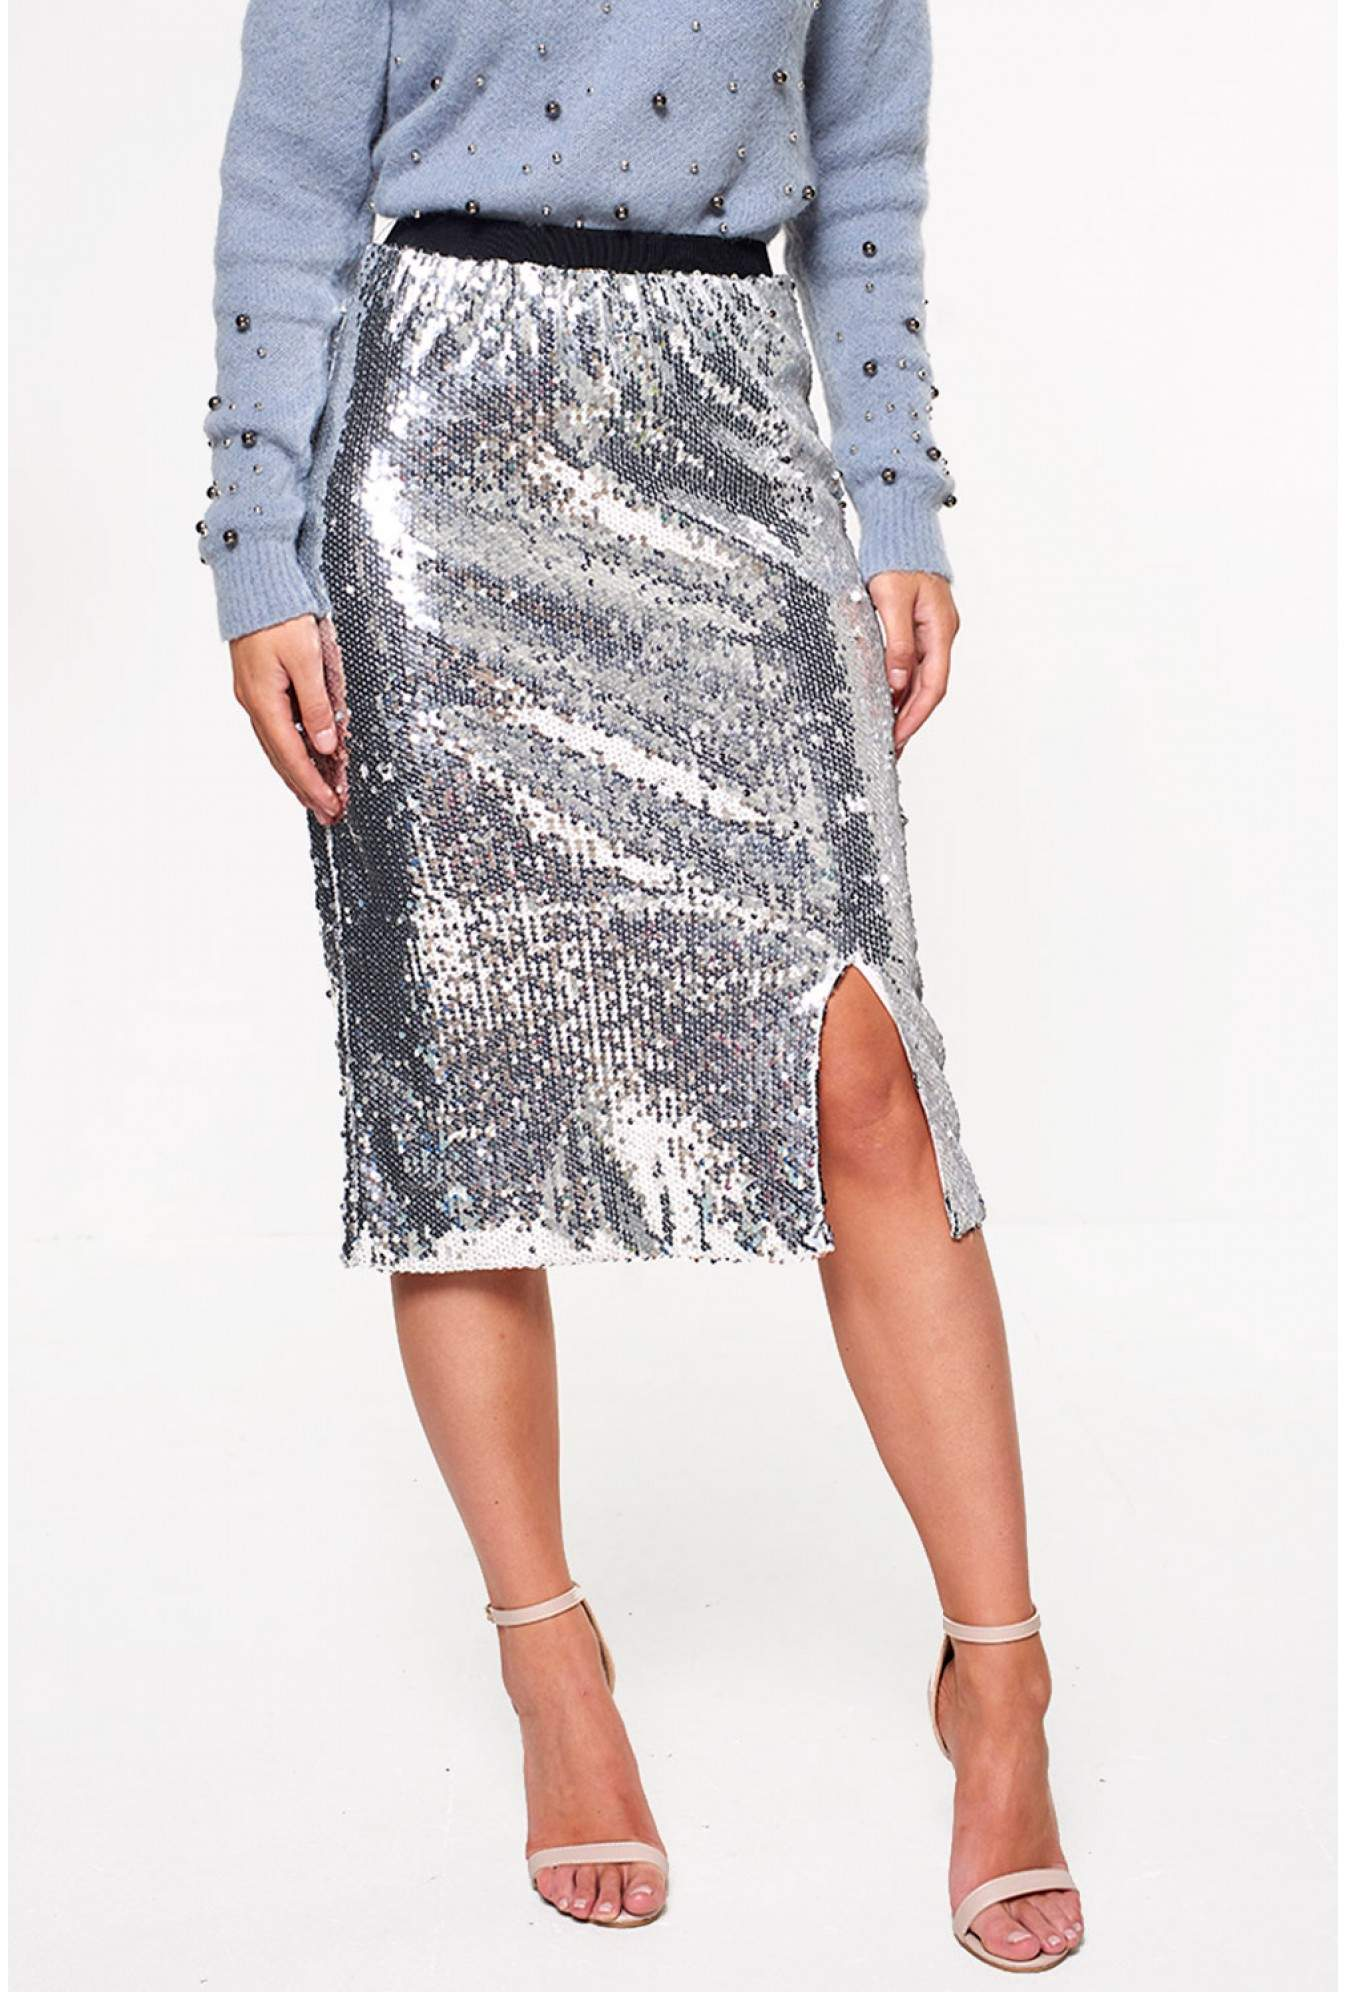 56964a8714 YAS Centa High Waist Sequin Skirt in Silver | iCLOTHING